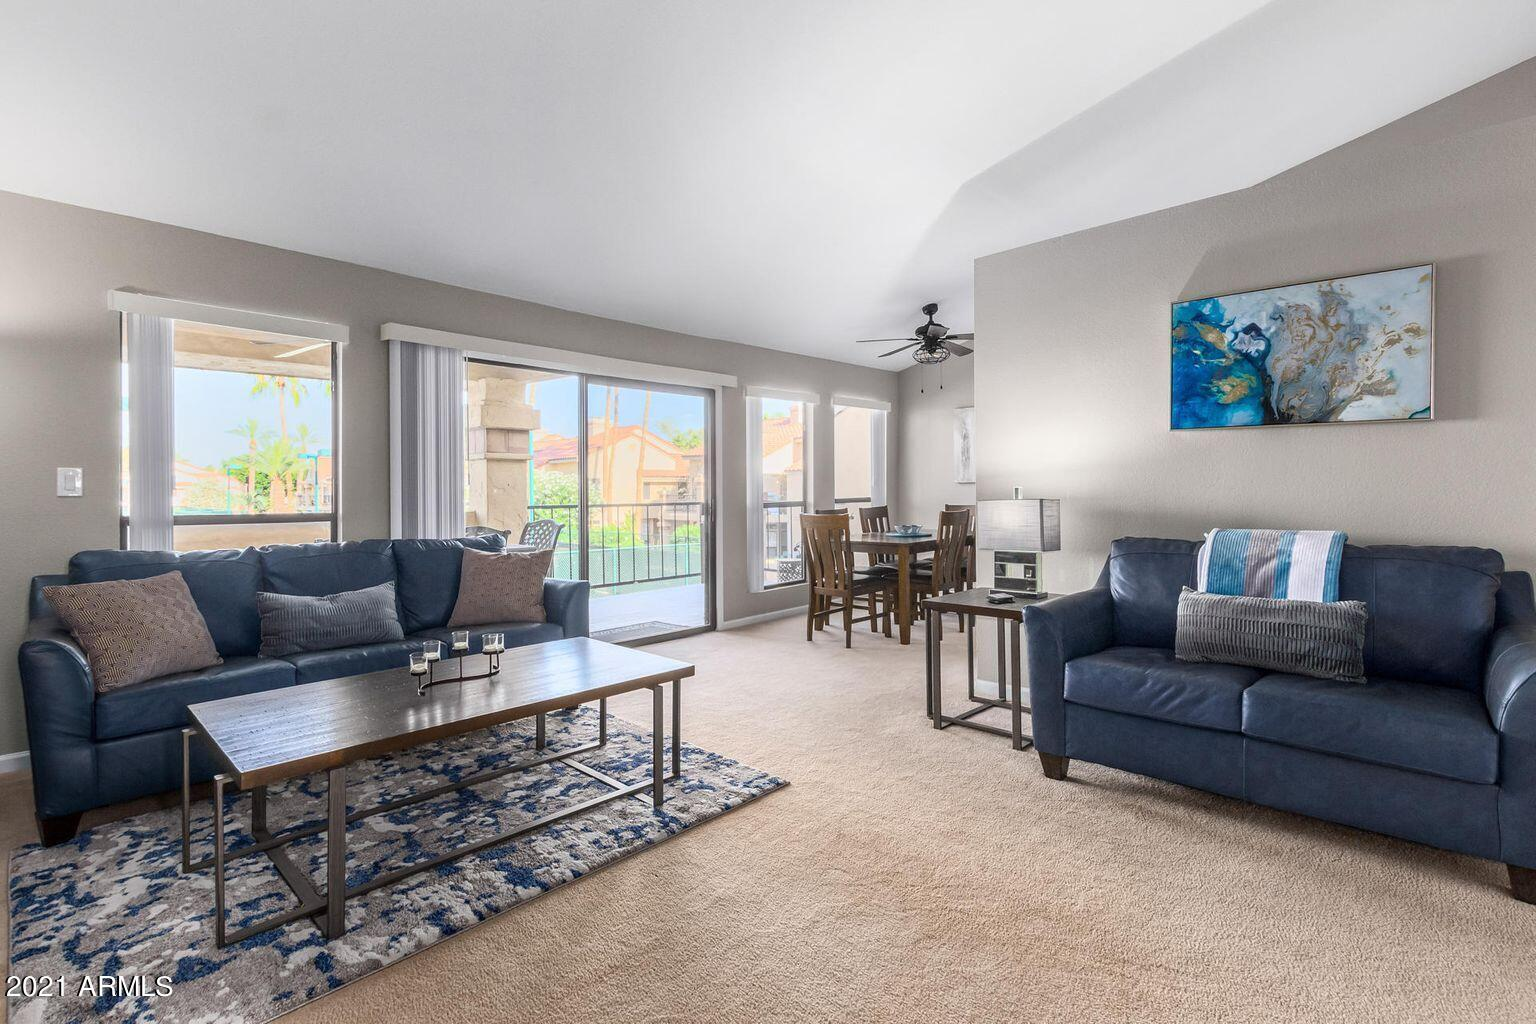 9707 E MOUNTAIN VIEW Road # 2405, Scottsdale, AZ 85258, 1 Bedroom Bedrooms, ,Residential Lease,For Rent,9707 E MOUNTAIN VIEW Road # 2405,6266438